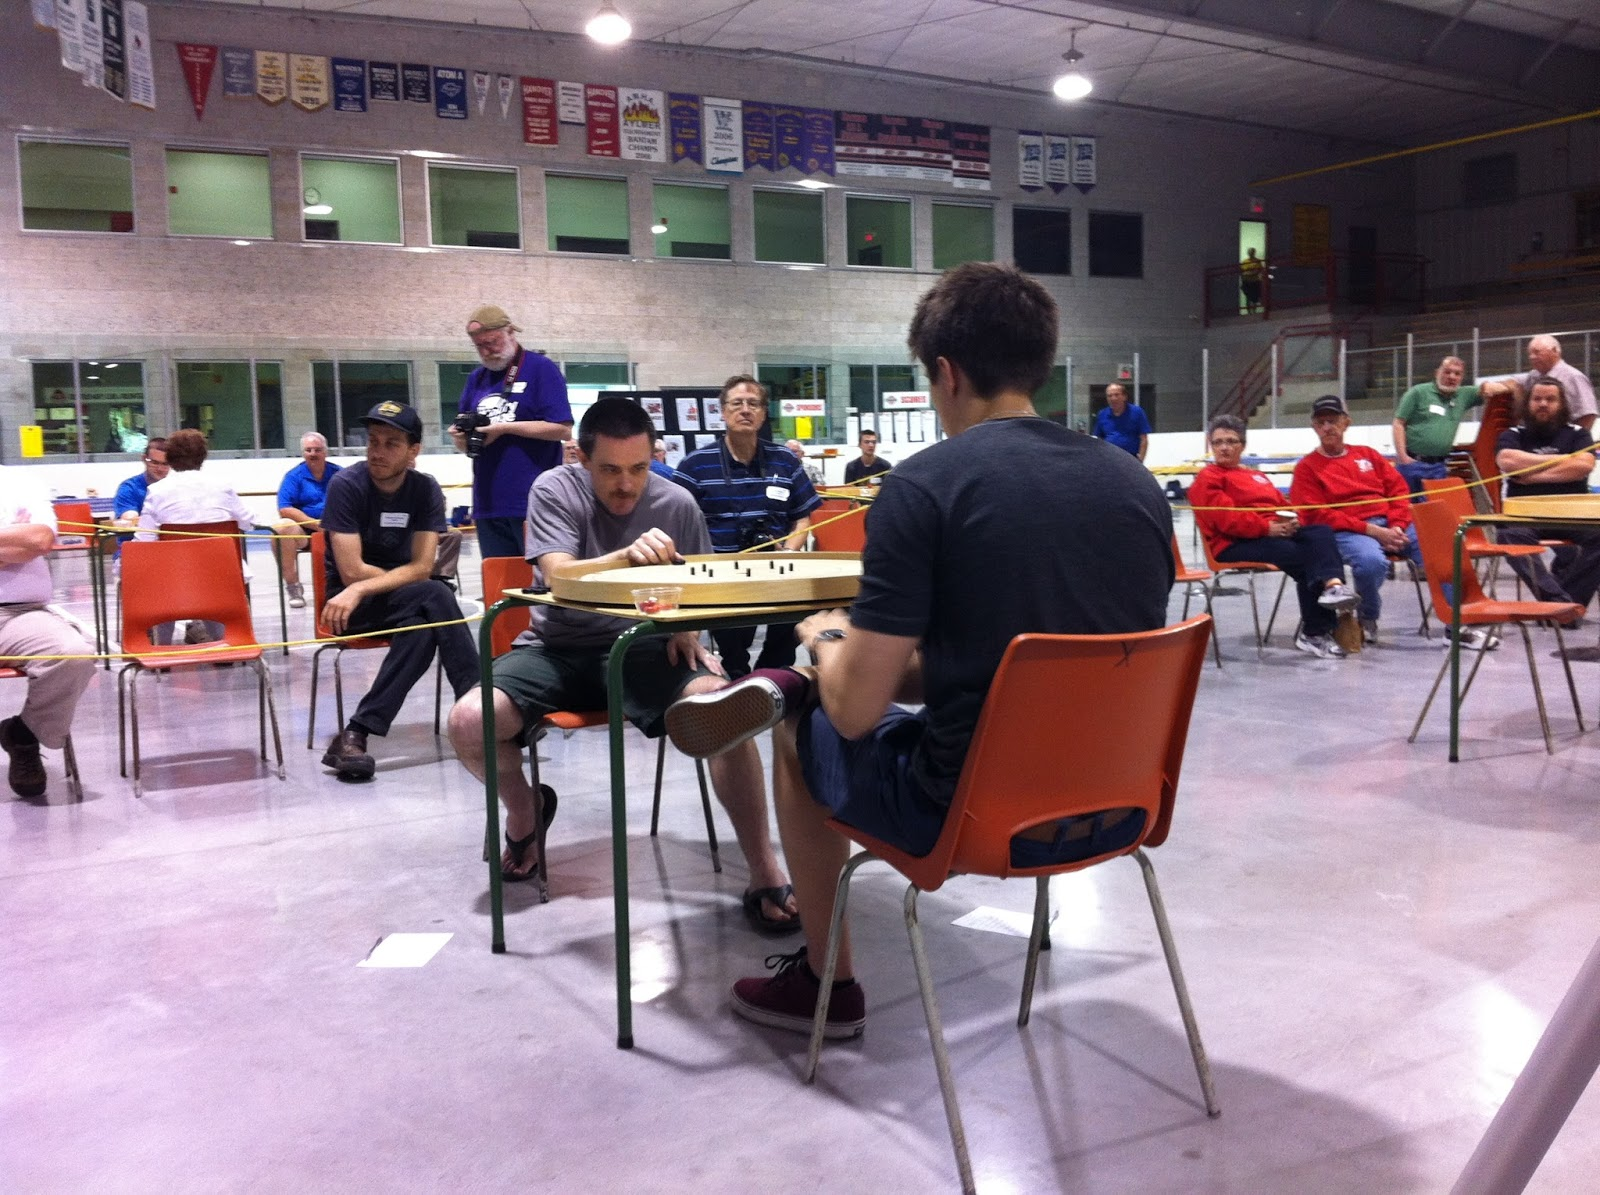 Top 4 Playoffs: Roy Campbell faces a relaxed Justin Slater